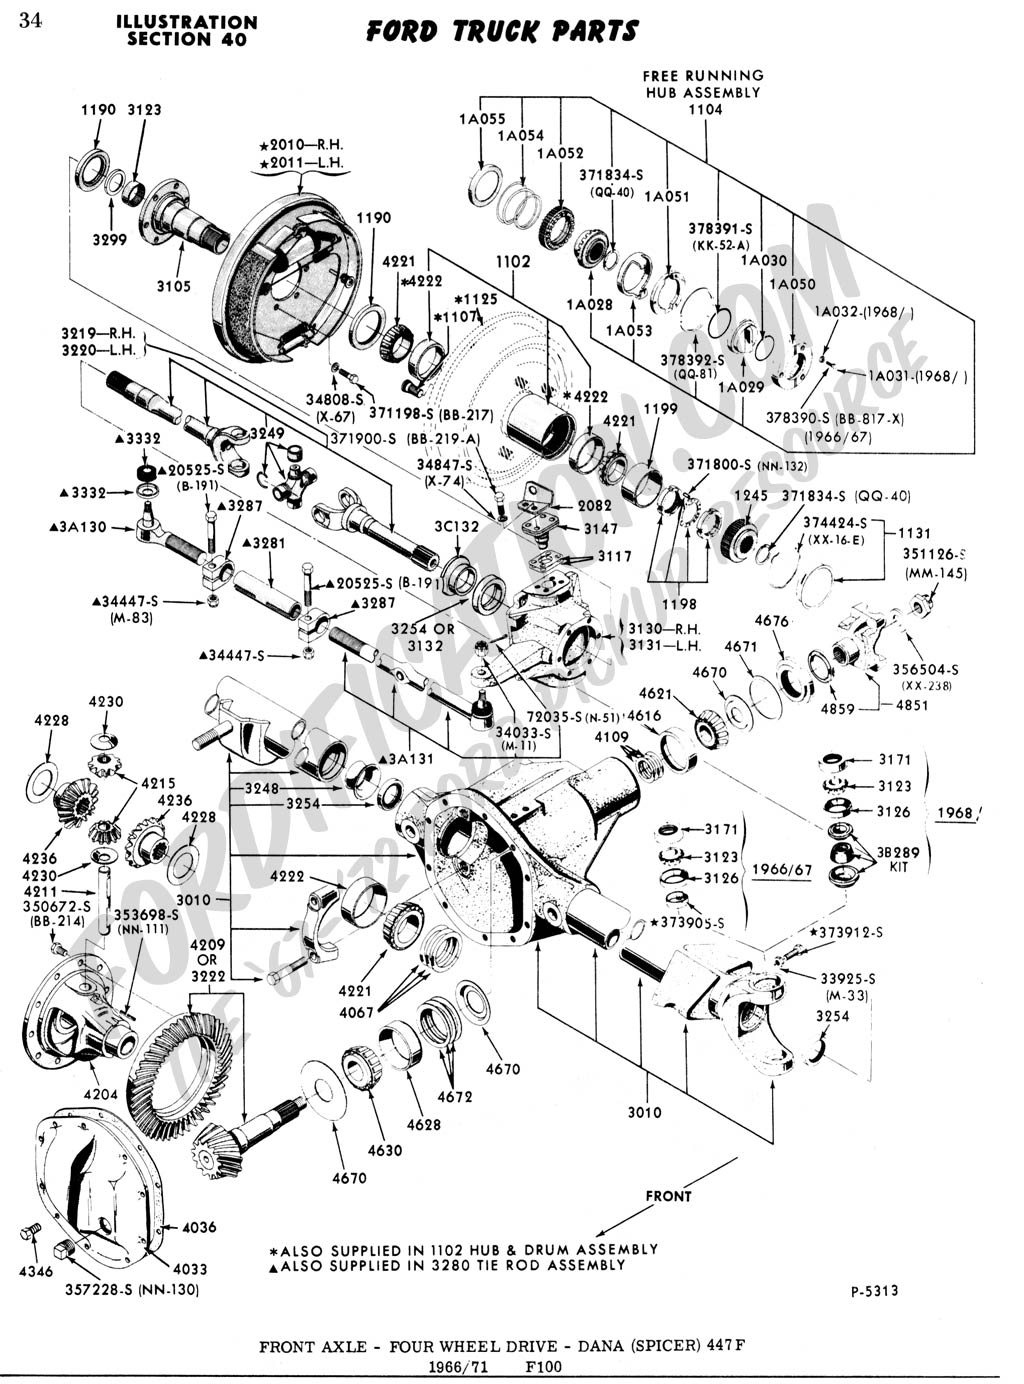 1997 ford f250 parts diagram 2006 yamaha raptor 700r wiring spindle